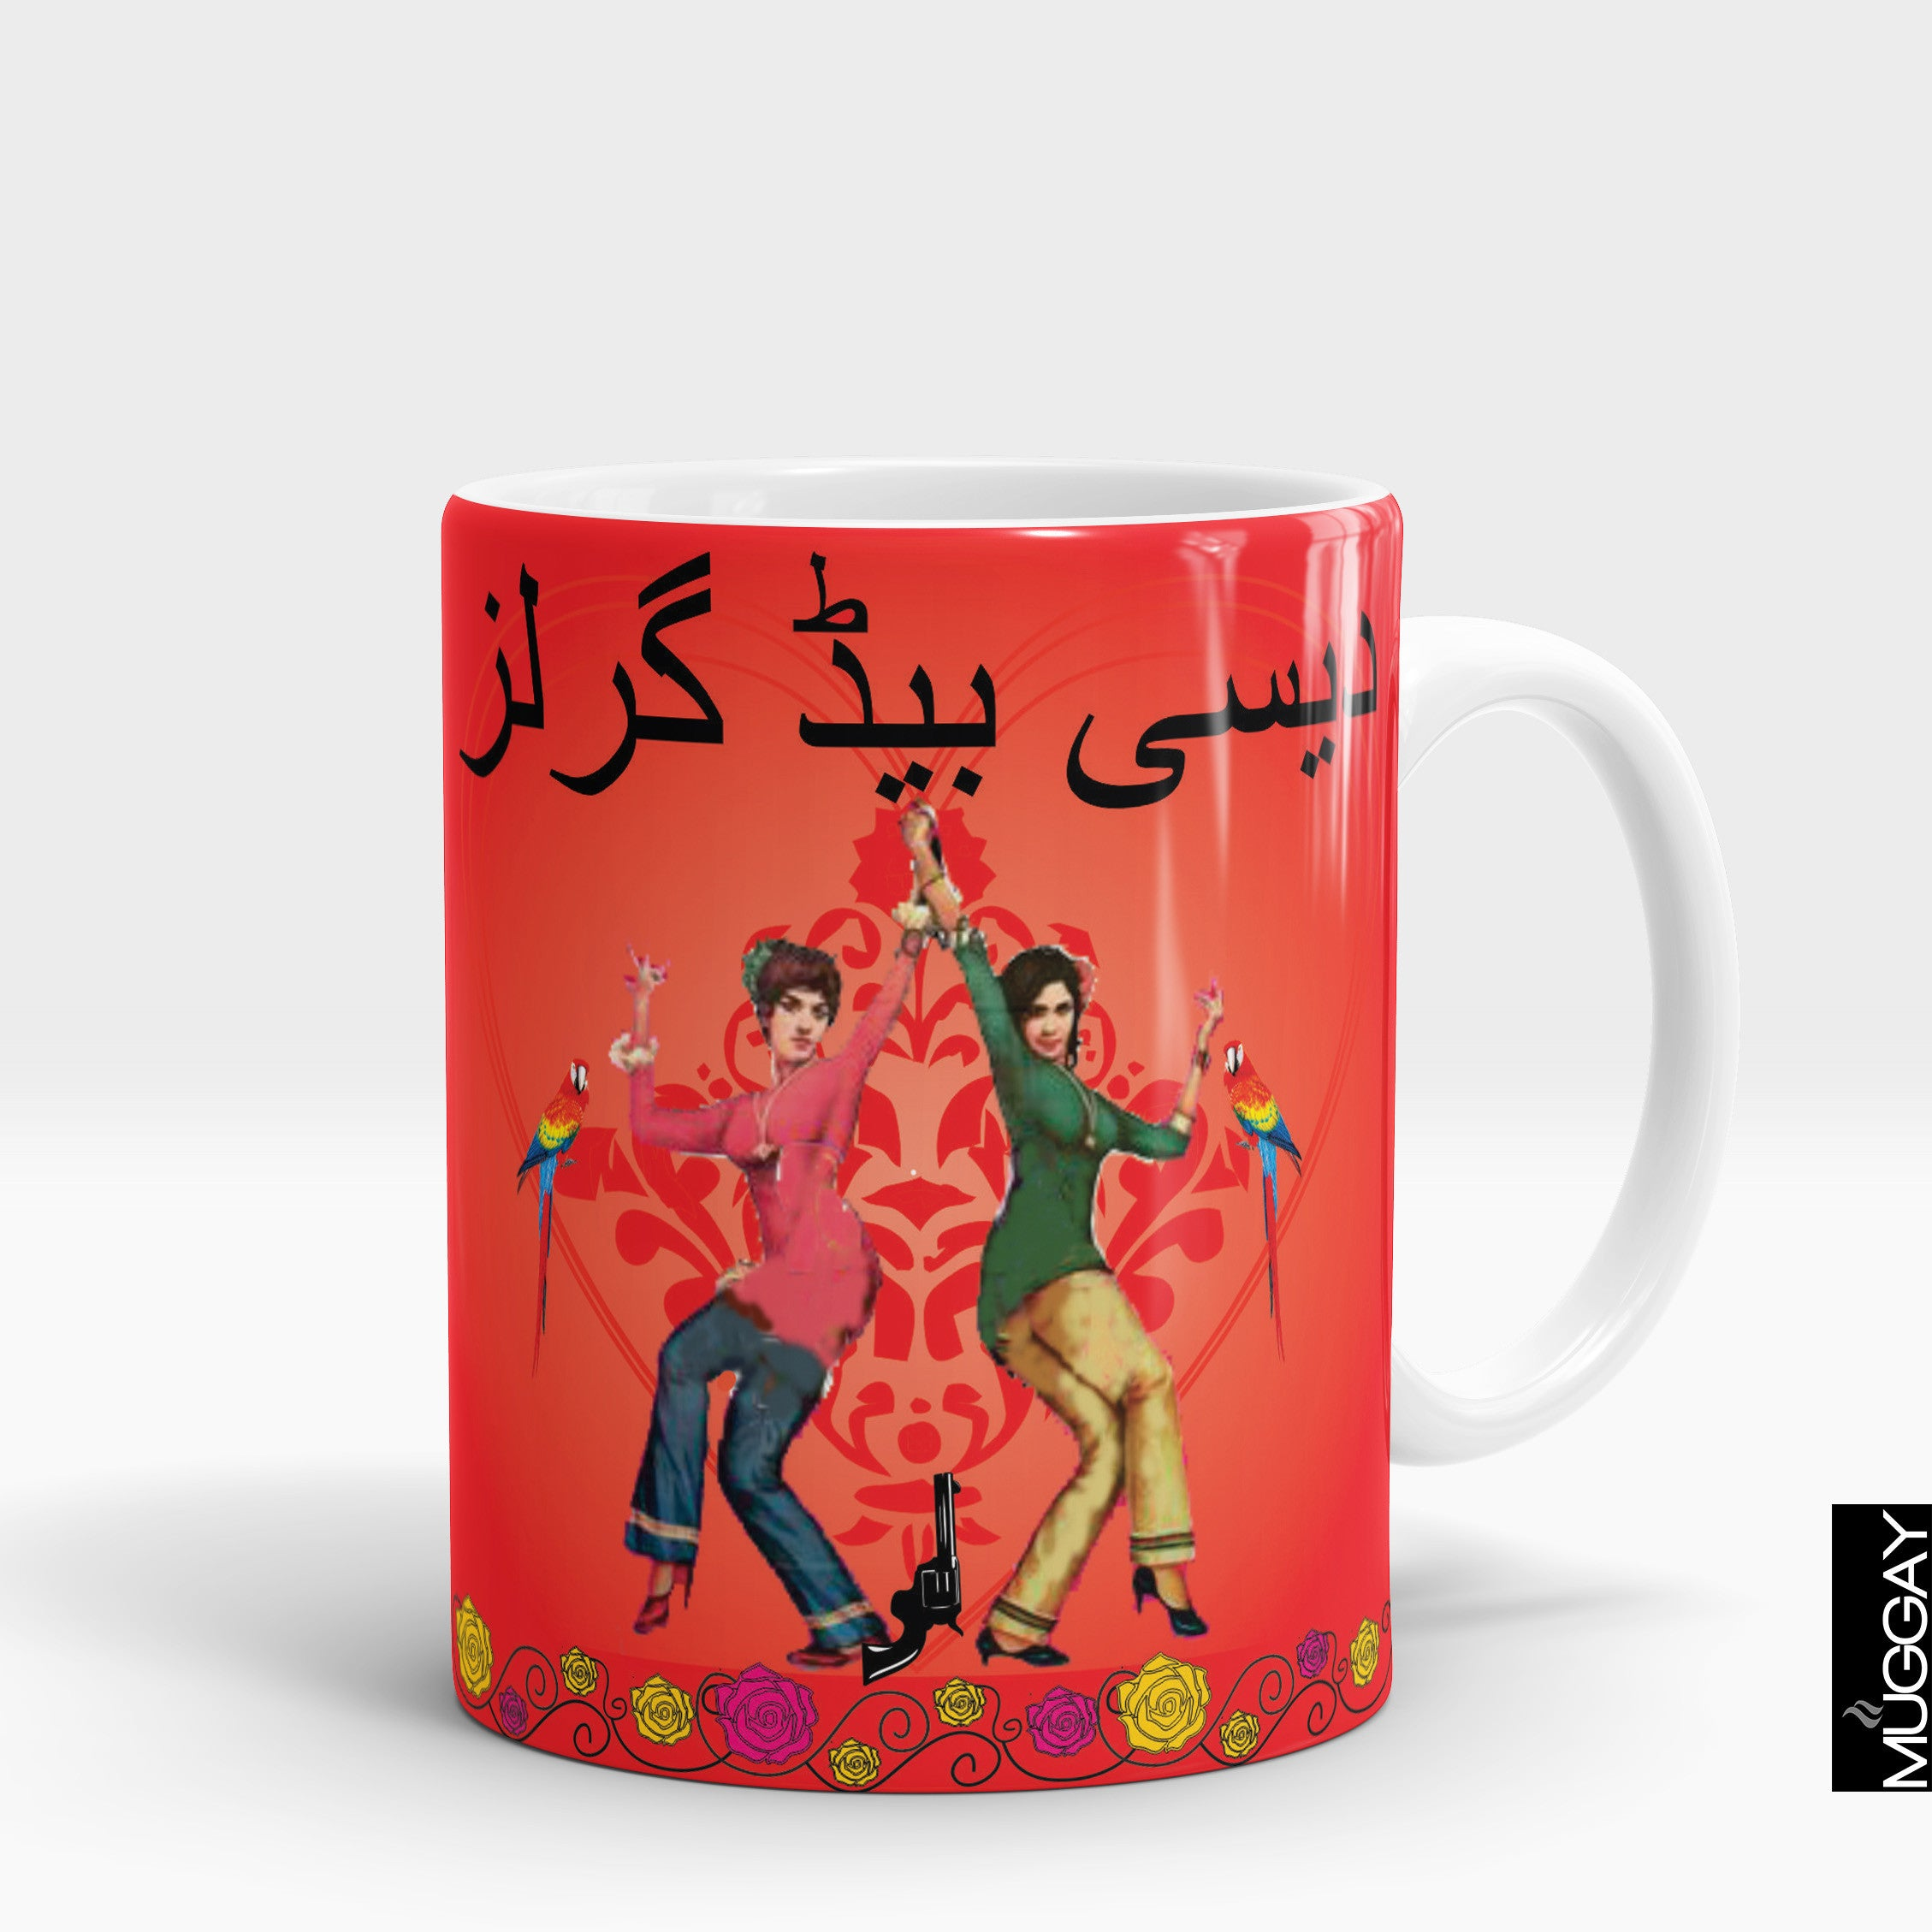 Funny Lollywood mugs4